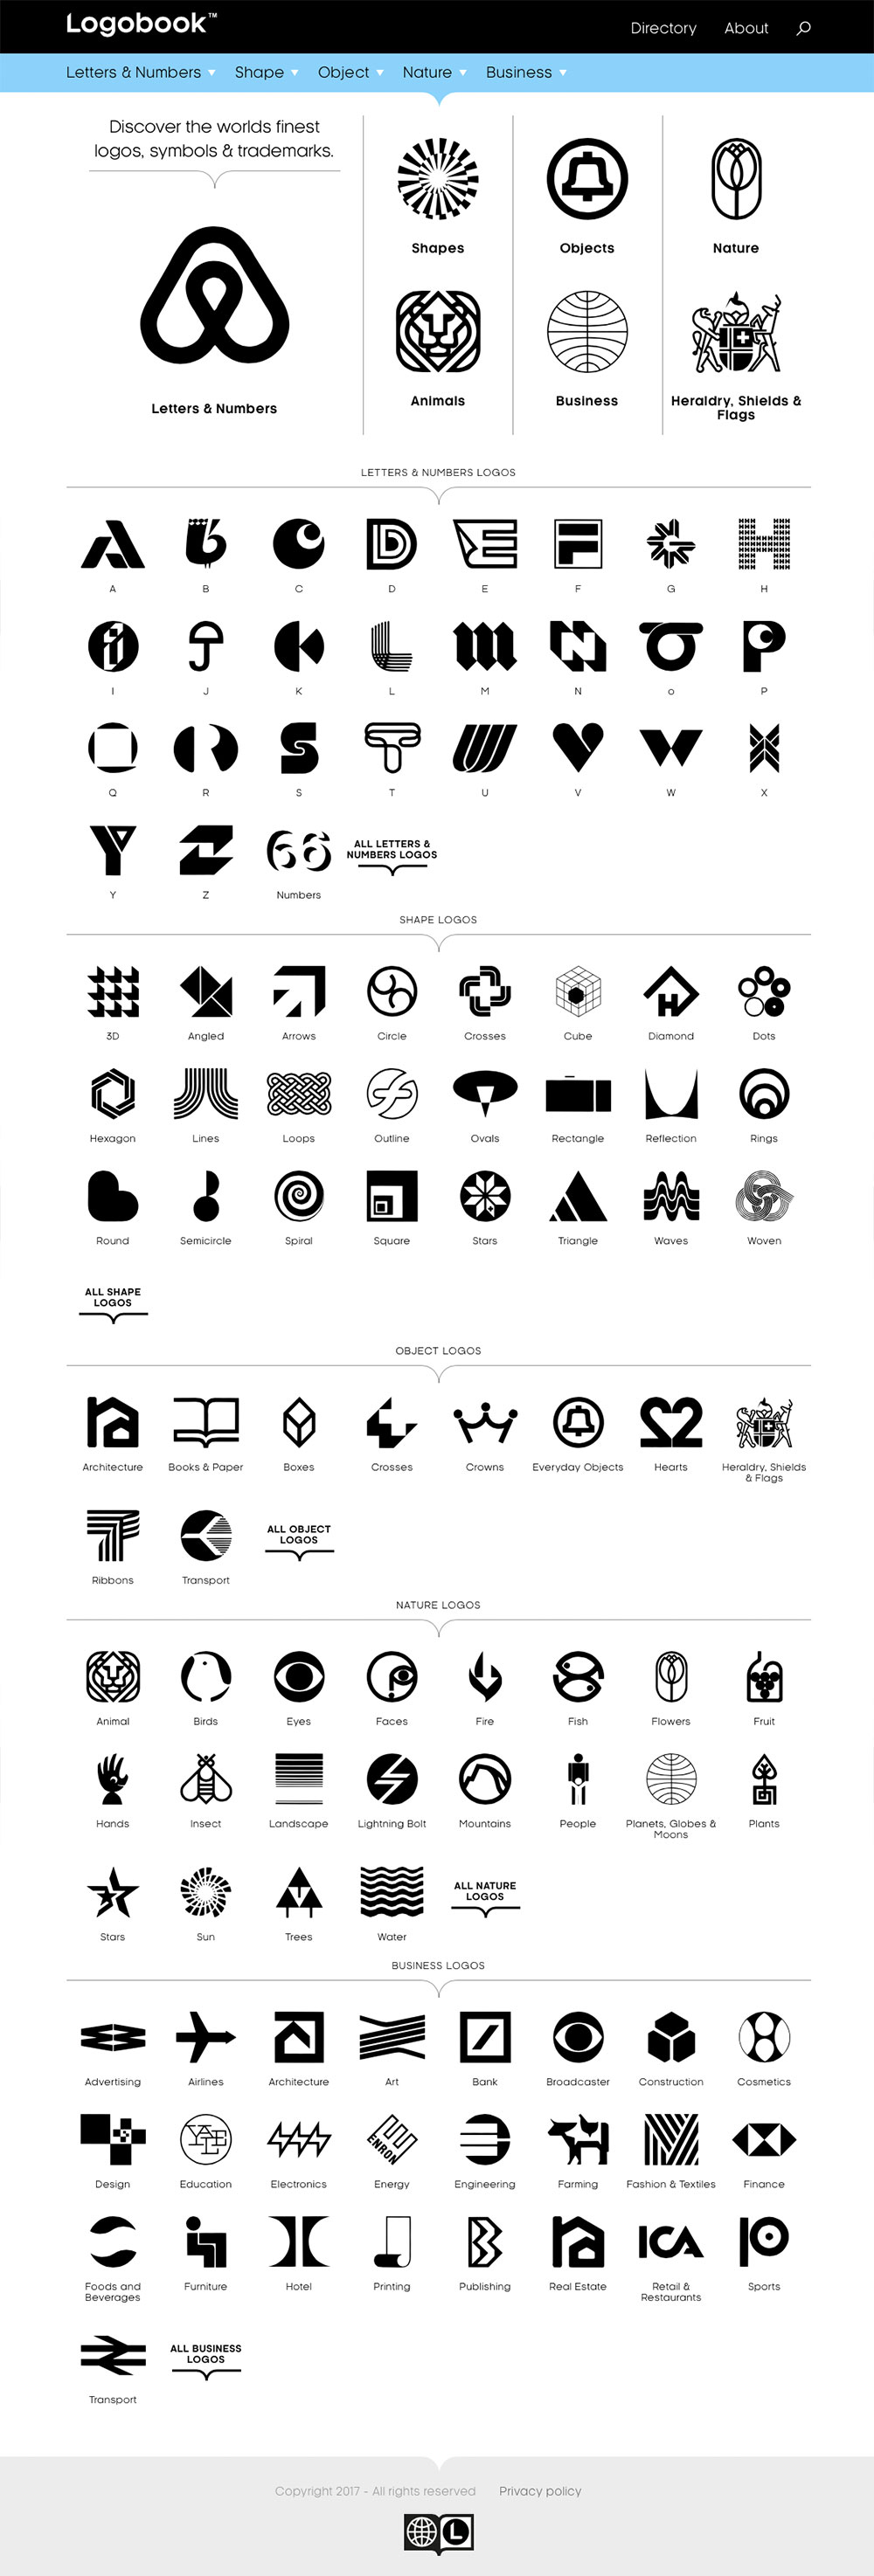 Logobook Archives The Finest Old And New Logos